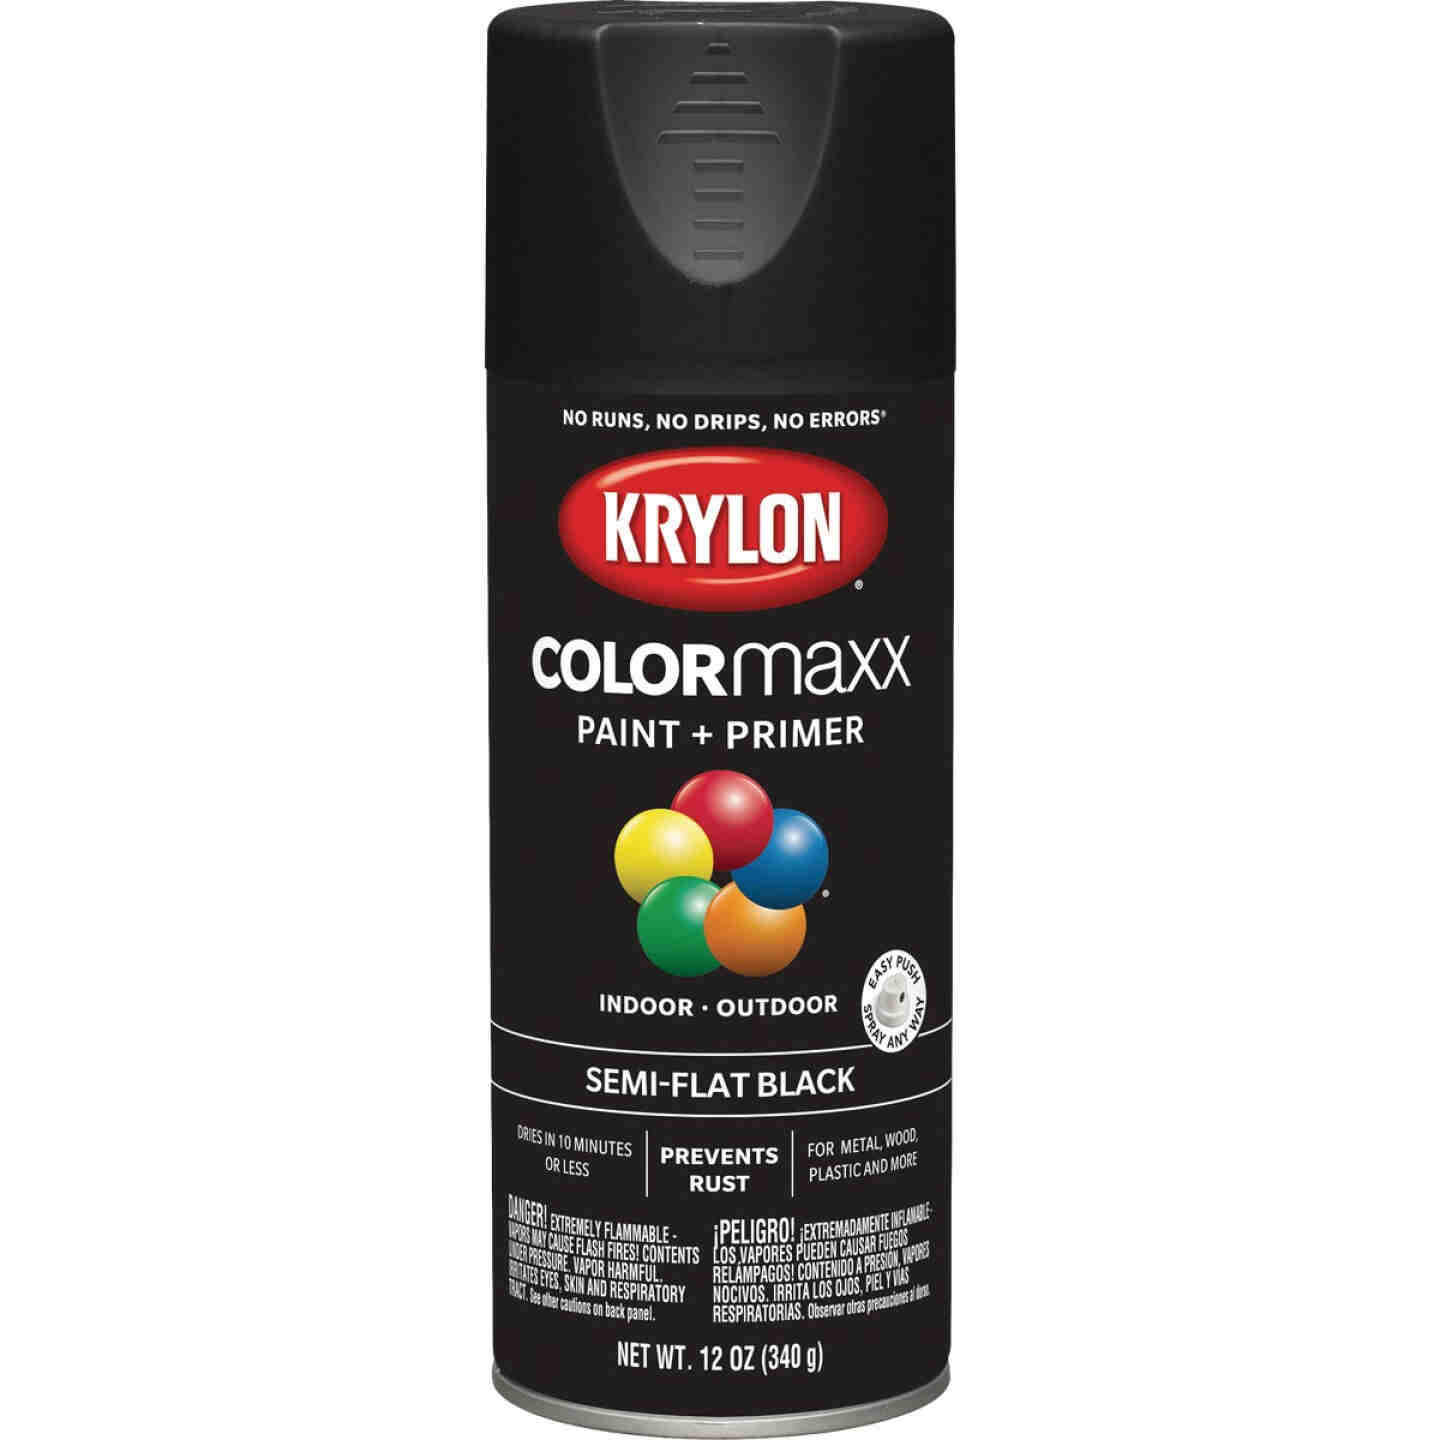 Krylon Colormaxx Semi-Flat Spray Paint & Primer, Black Image 1